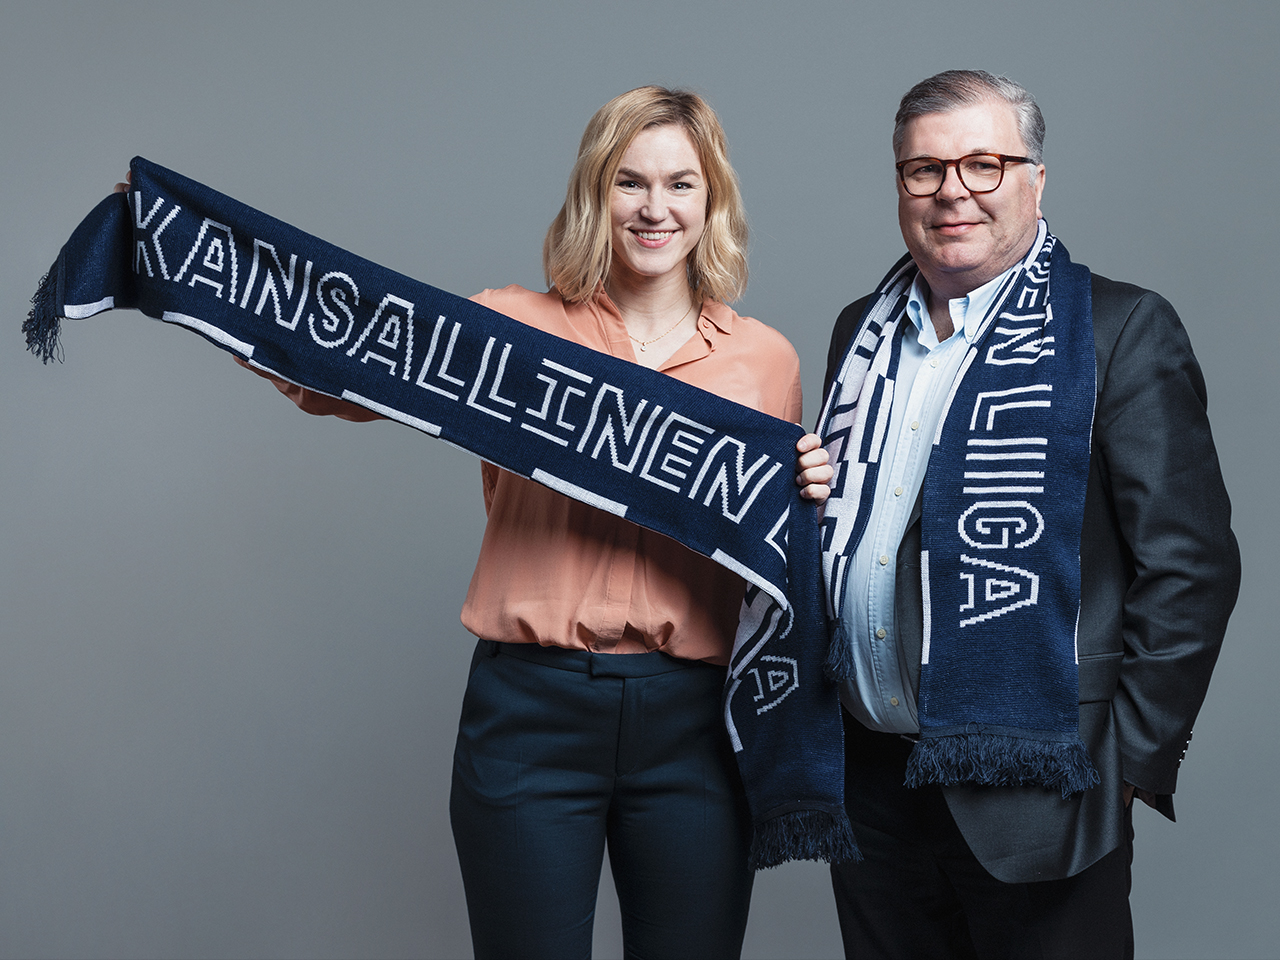 Finland ditches 'women' from football league name in another step towards equality